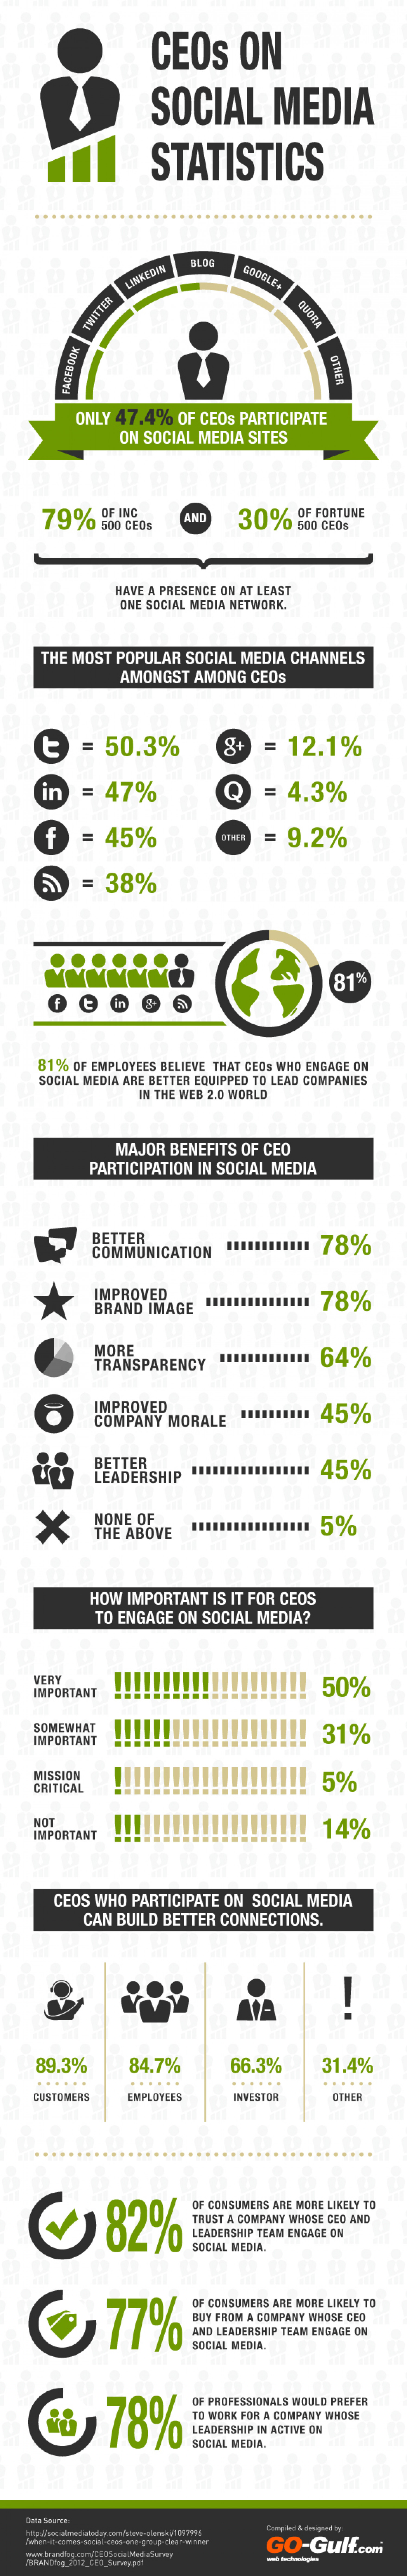 CEOs on Social Media Statistics Infographic